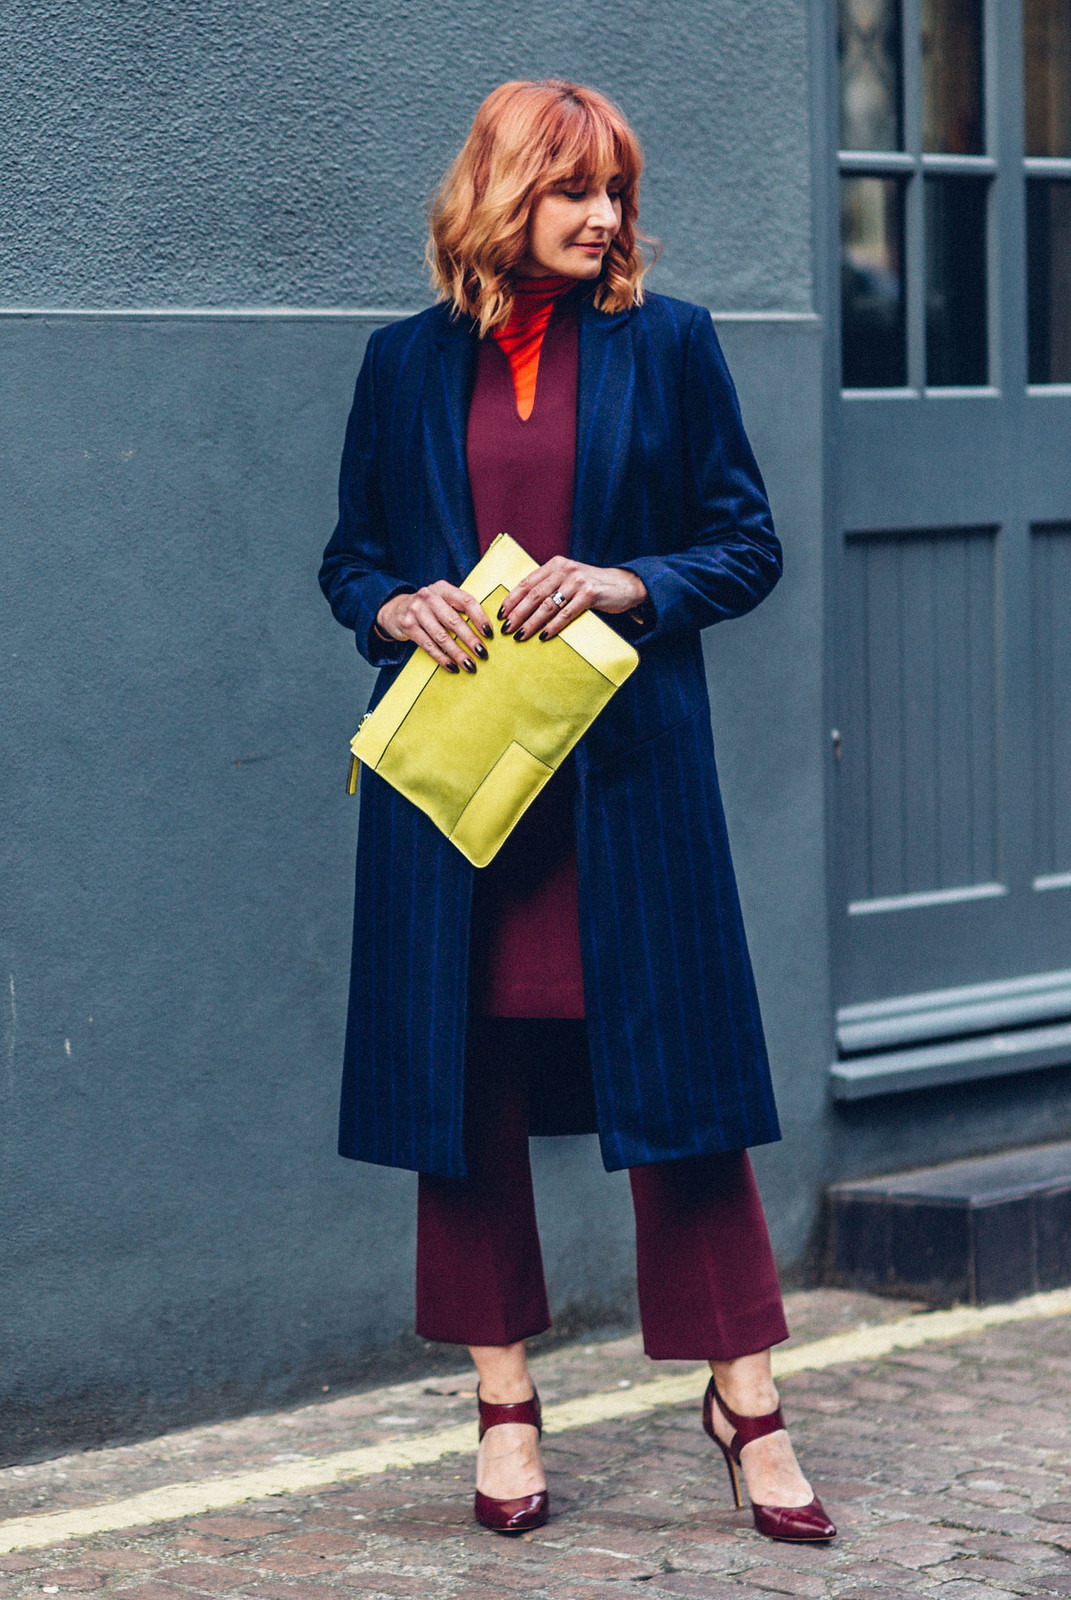 Bold jewel colours \ Autumn look \ fall outfit \ smart winter wear \ layering \ Jaeger \ Longline pinstripe coat, red roll neck, burgundy cocoon dress and cropped flares, yellow suede clutch | Not Dressed As Lamb, over 40 style